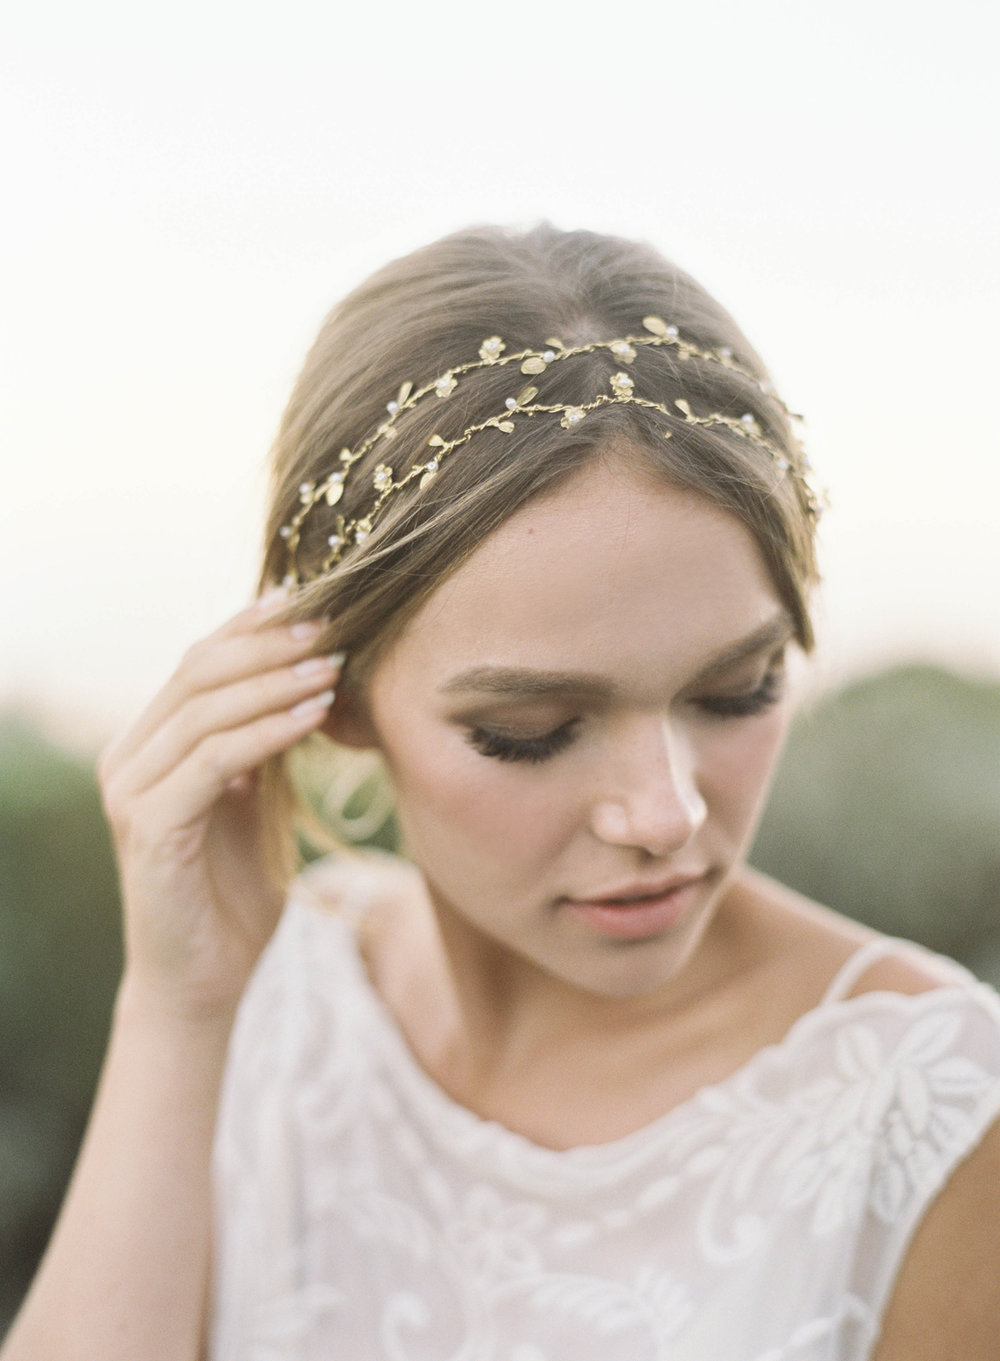 Forever everyone's favorite hair vine,   Matilda   - subtly feminine and floral. Offered in gold, silver and rose gold with tiny pearl or crystal accents! Farm house wedding ready but also not too sweet for our city gals craving something floral!